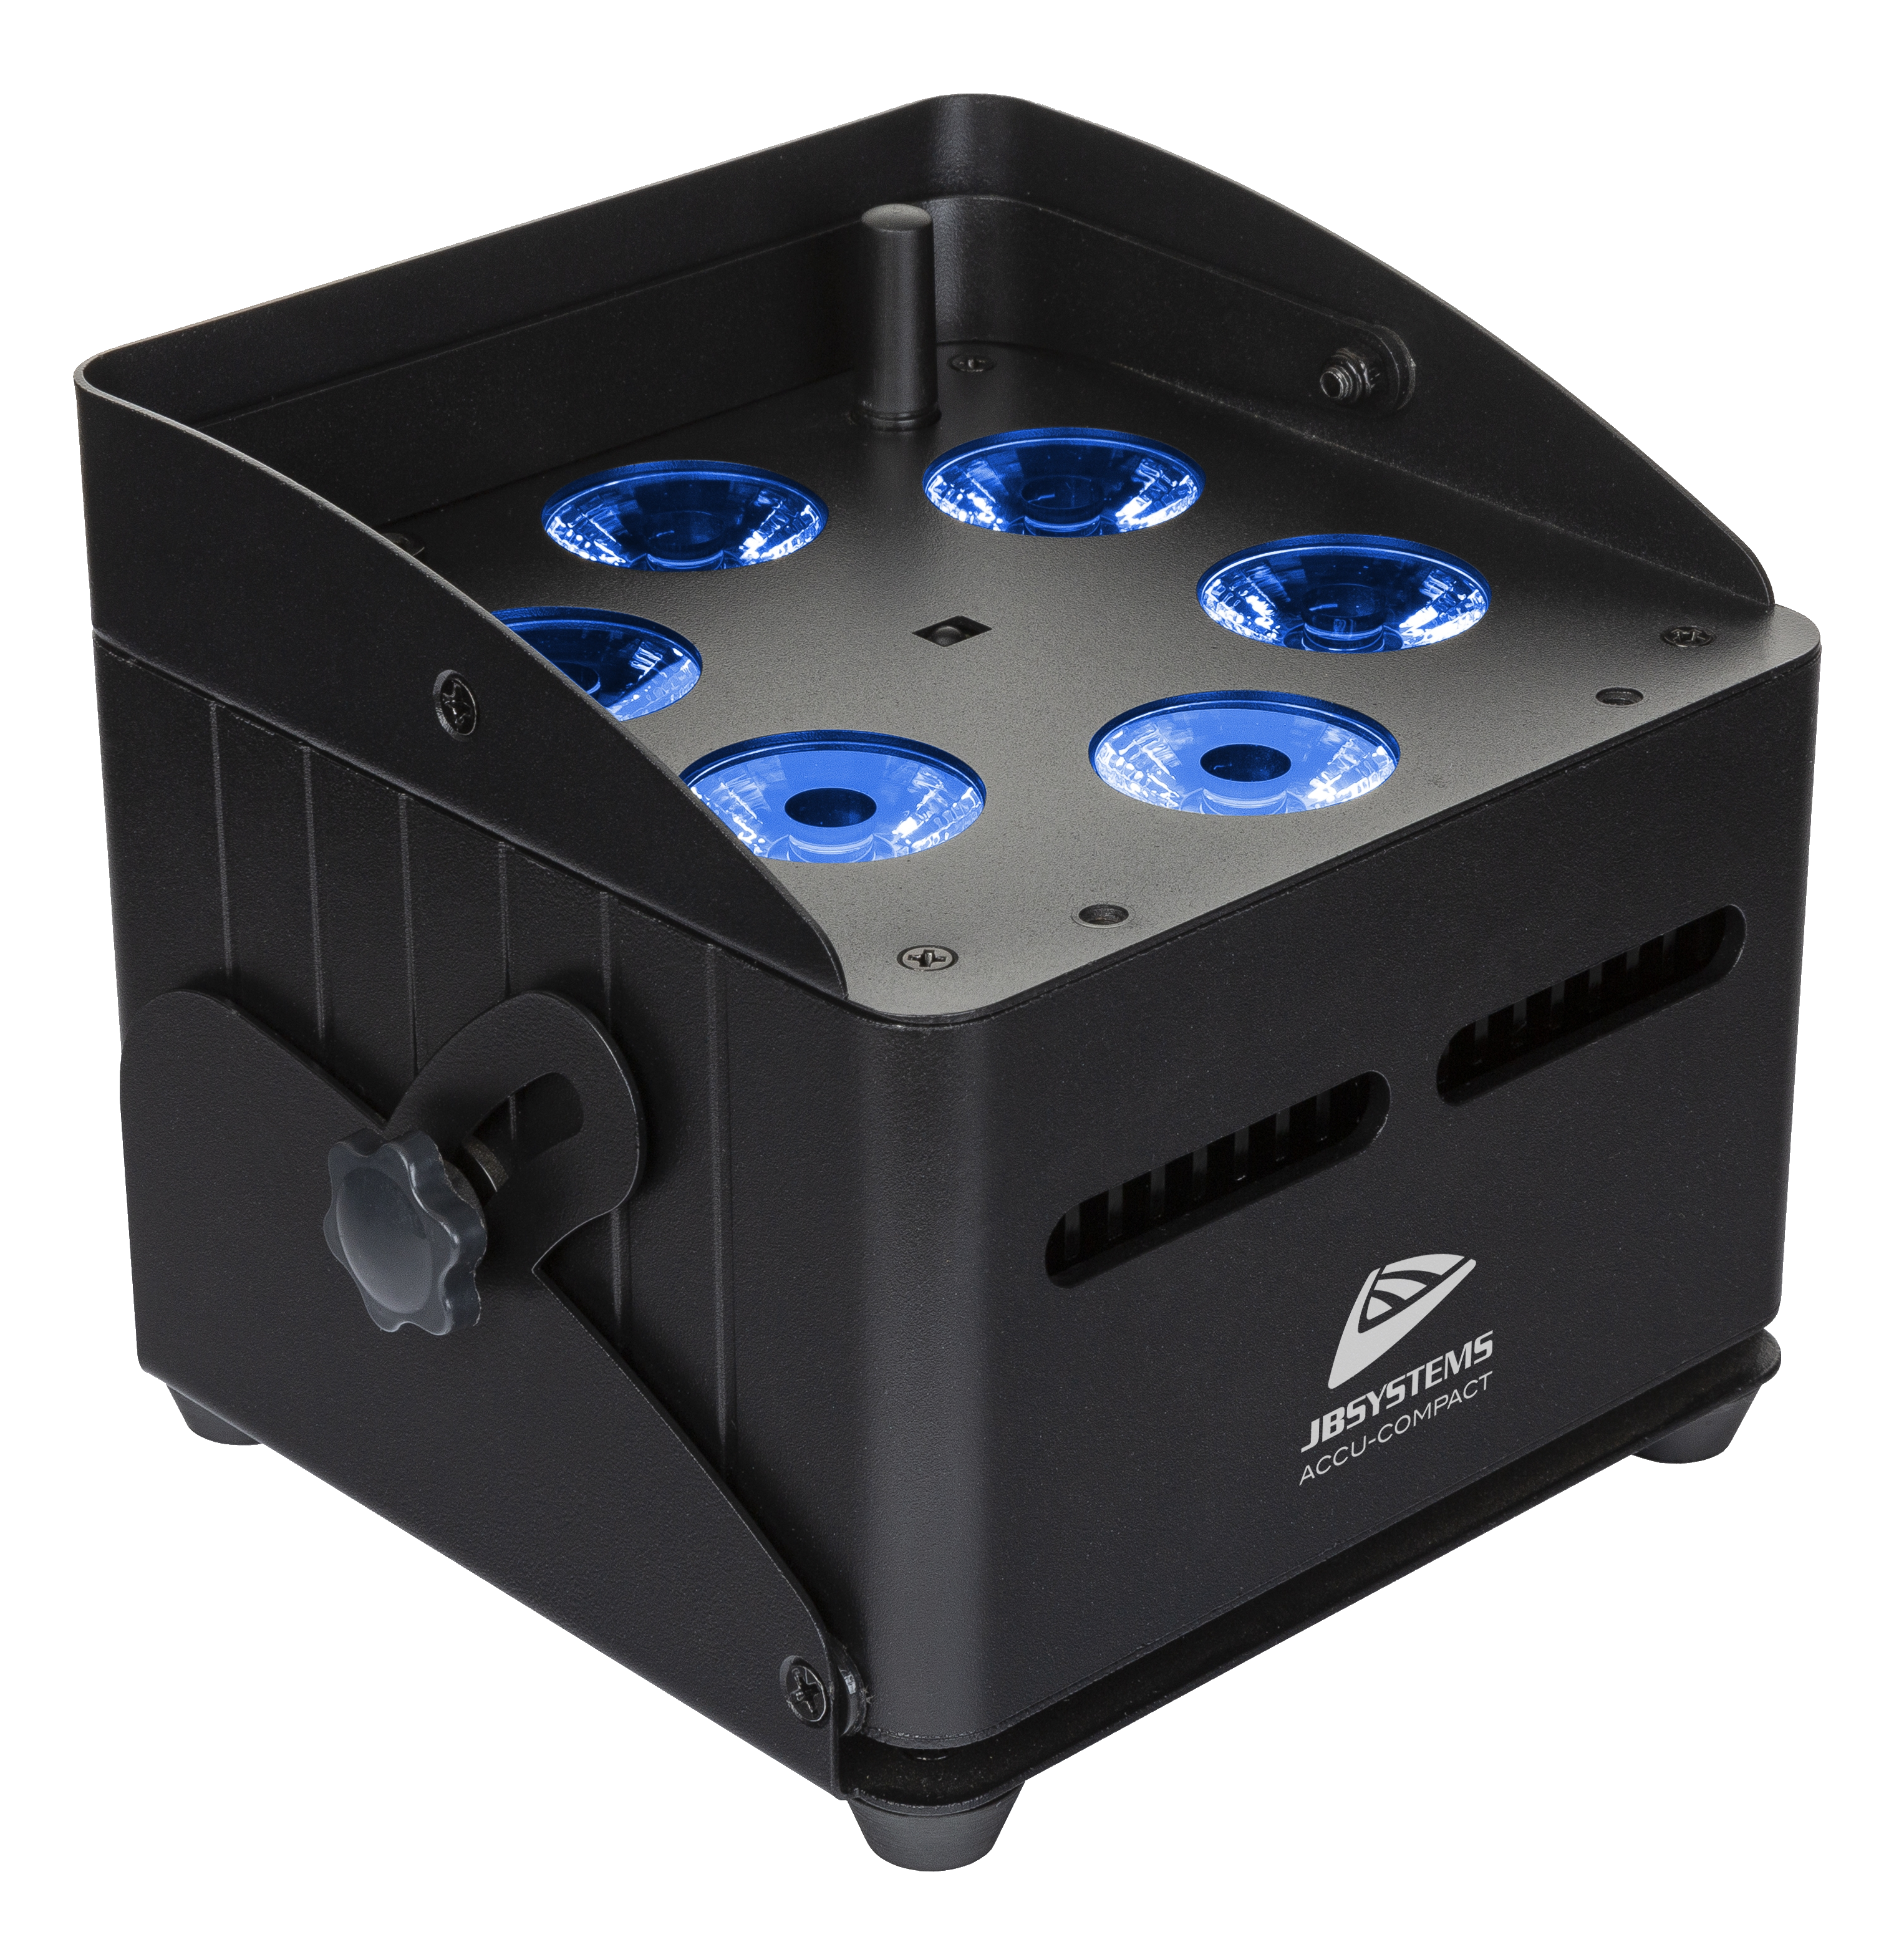 Discoverlichting JB Systems Accu compact